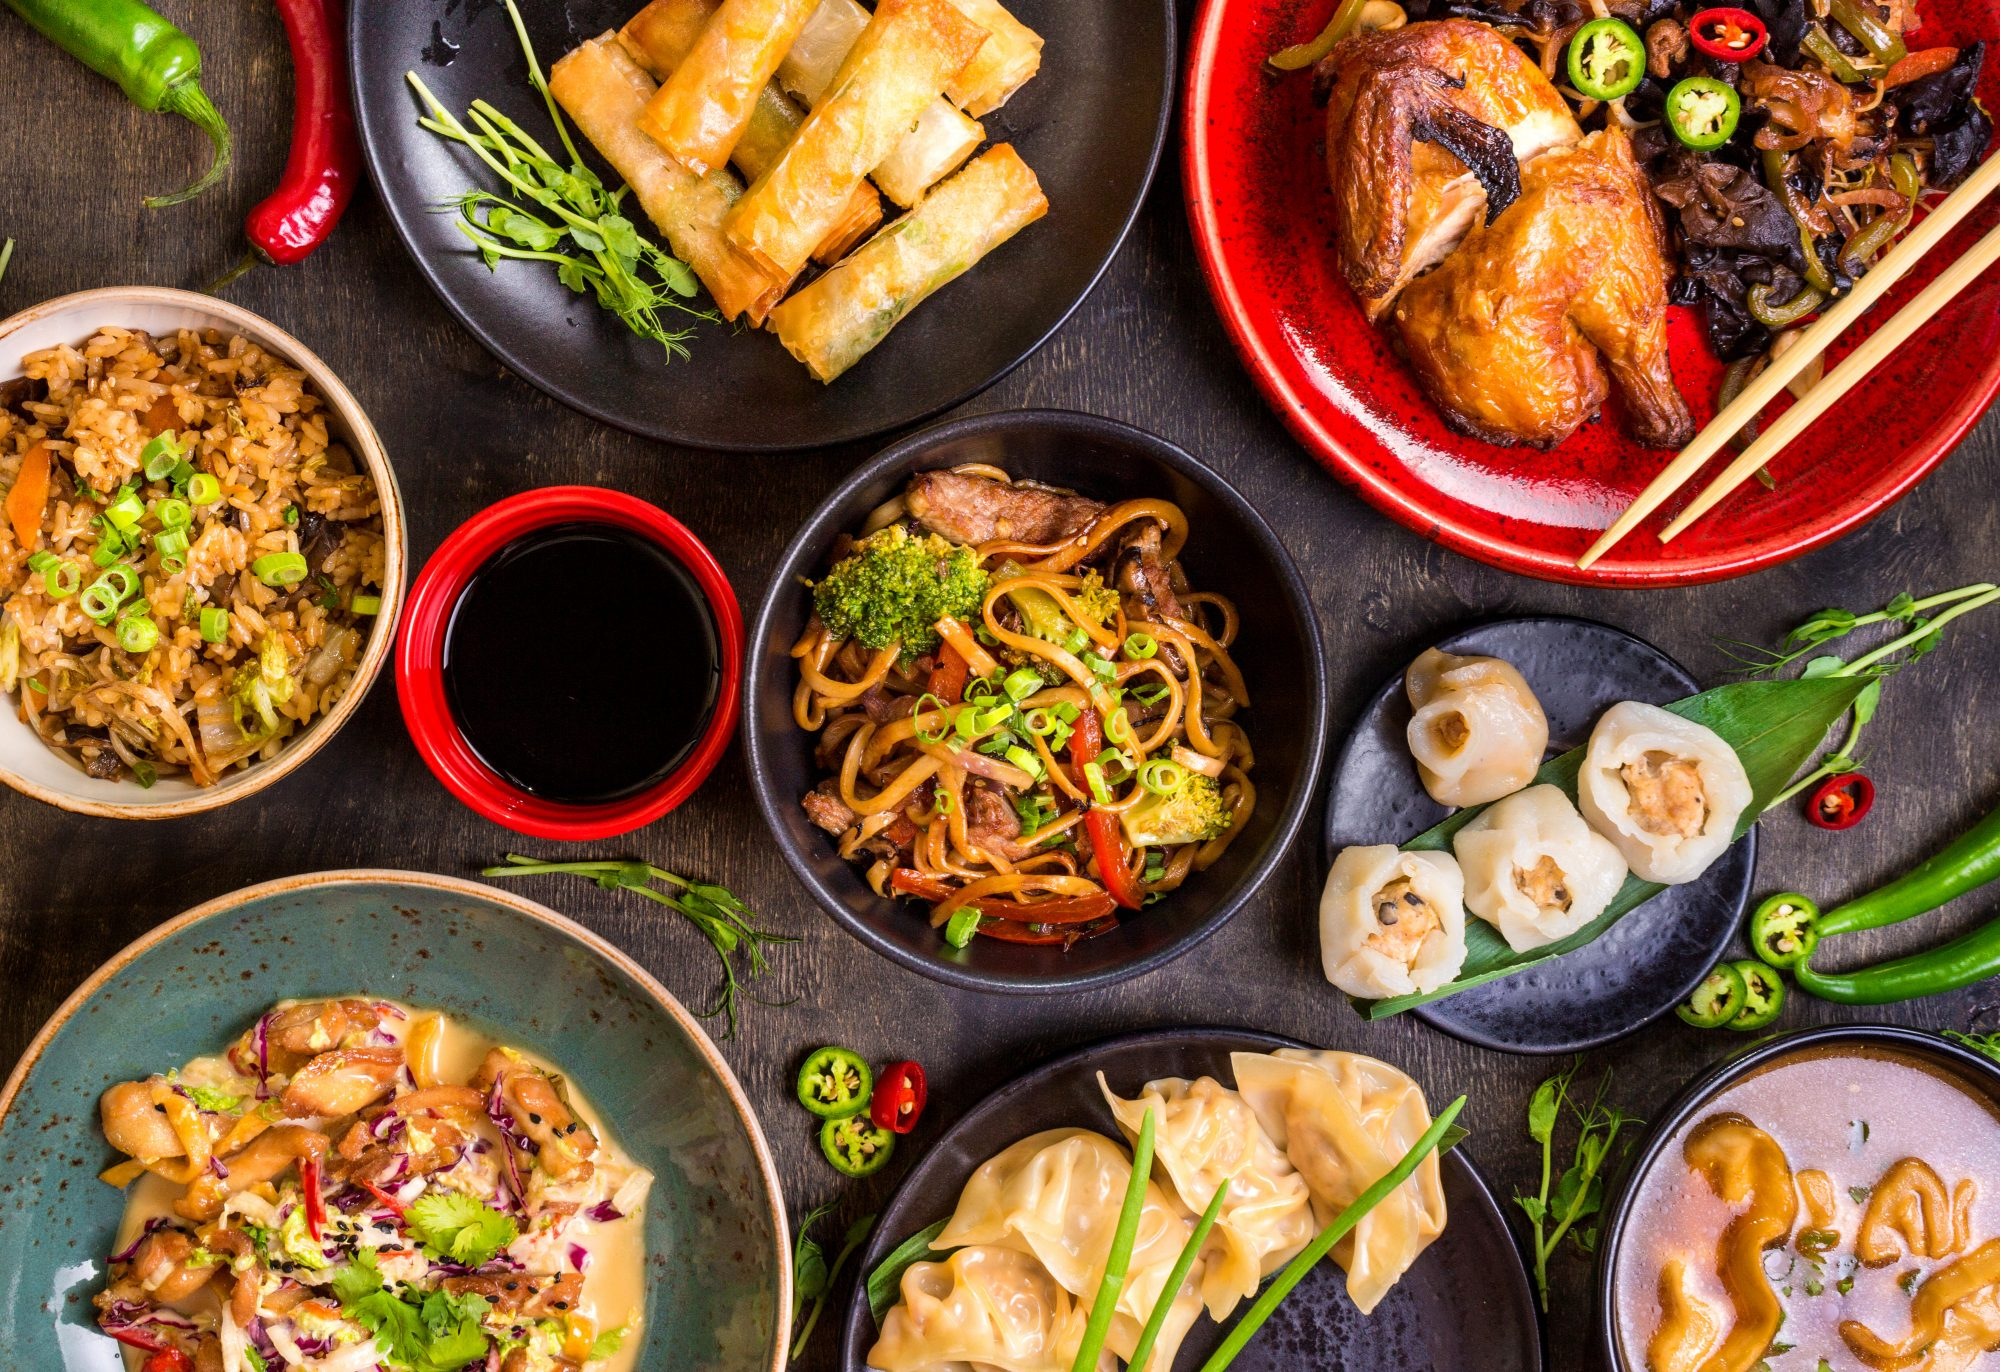 What You Need to Start Cooking More Chinese Food at Home